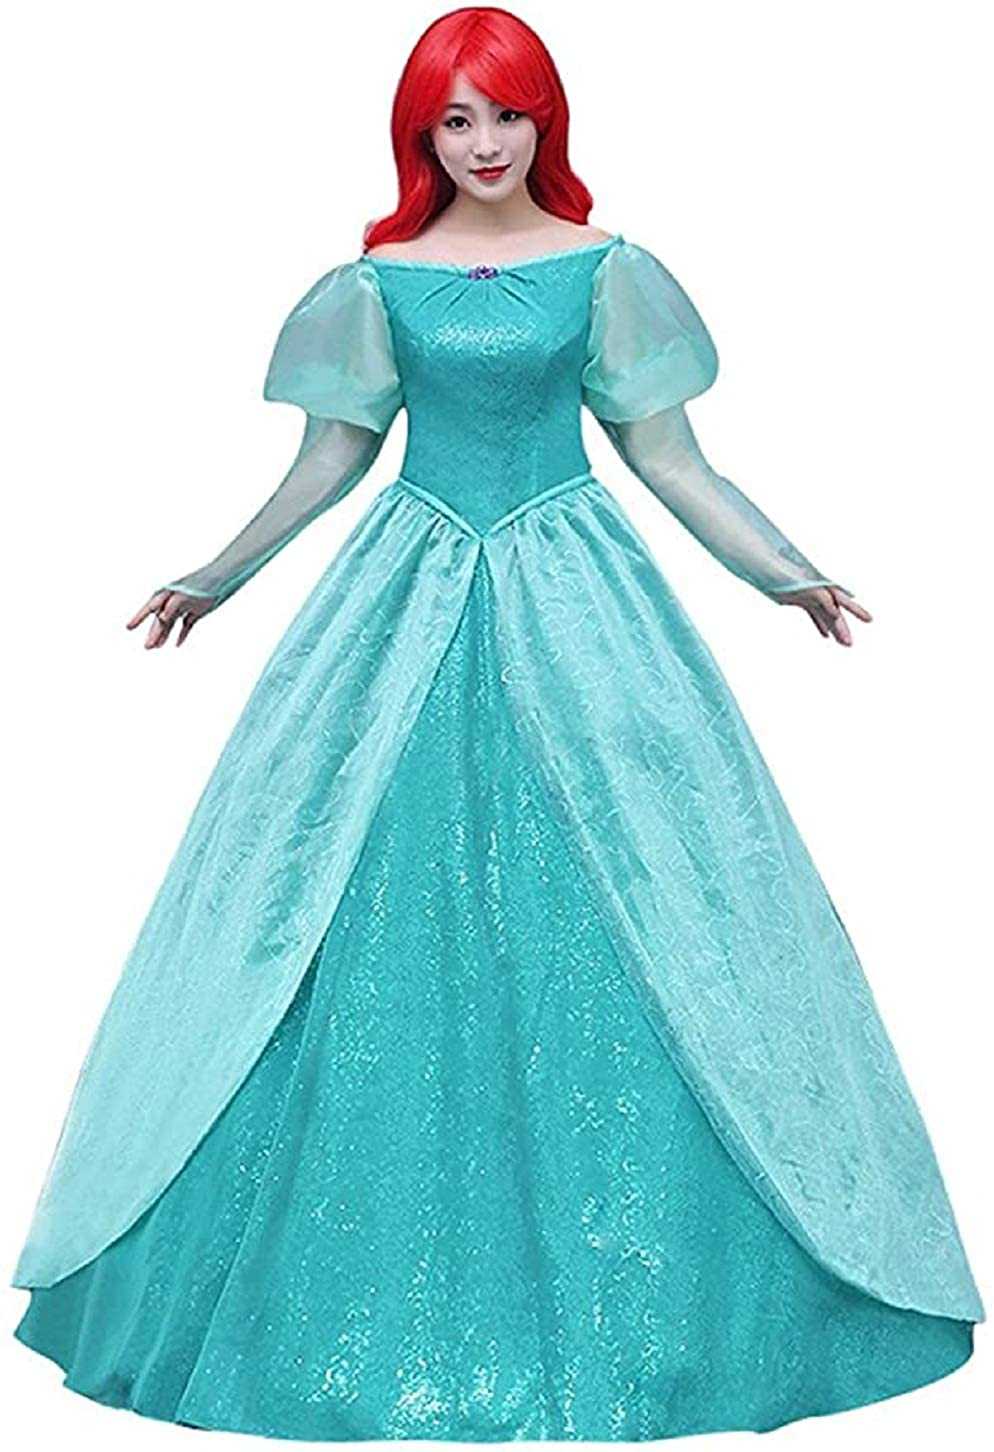 Xfang Womens Deluxe Princess Dress Cosplay Costume Green Satin Party Cloth